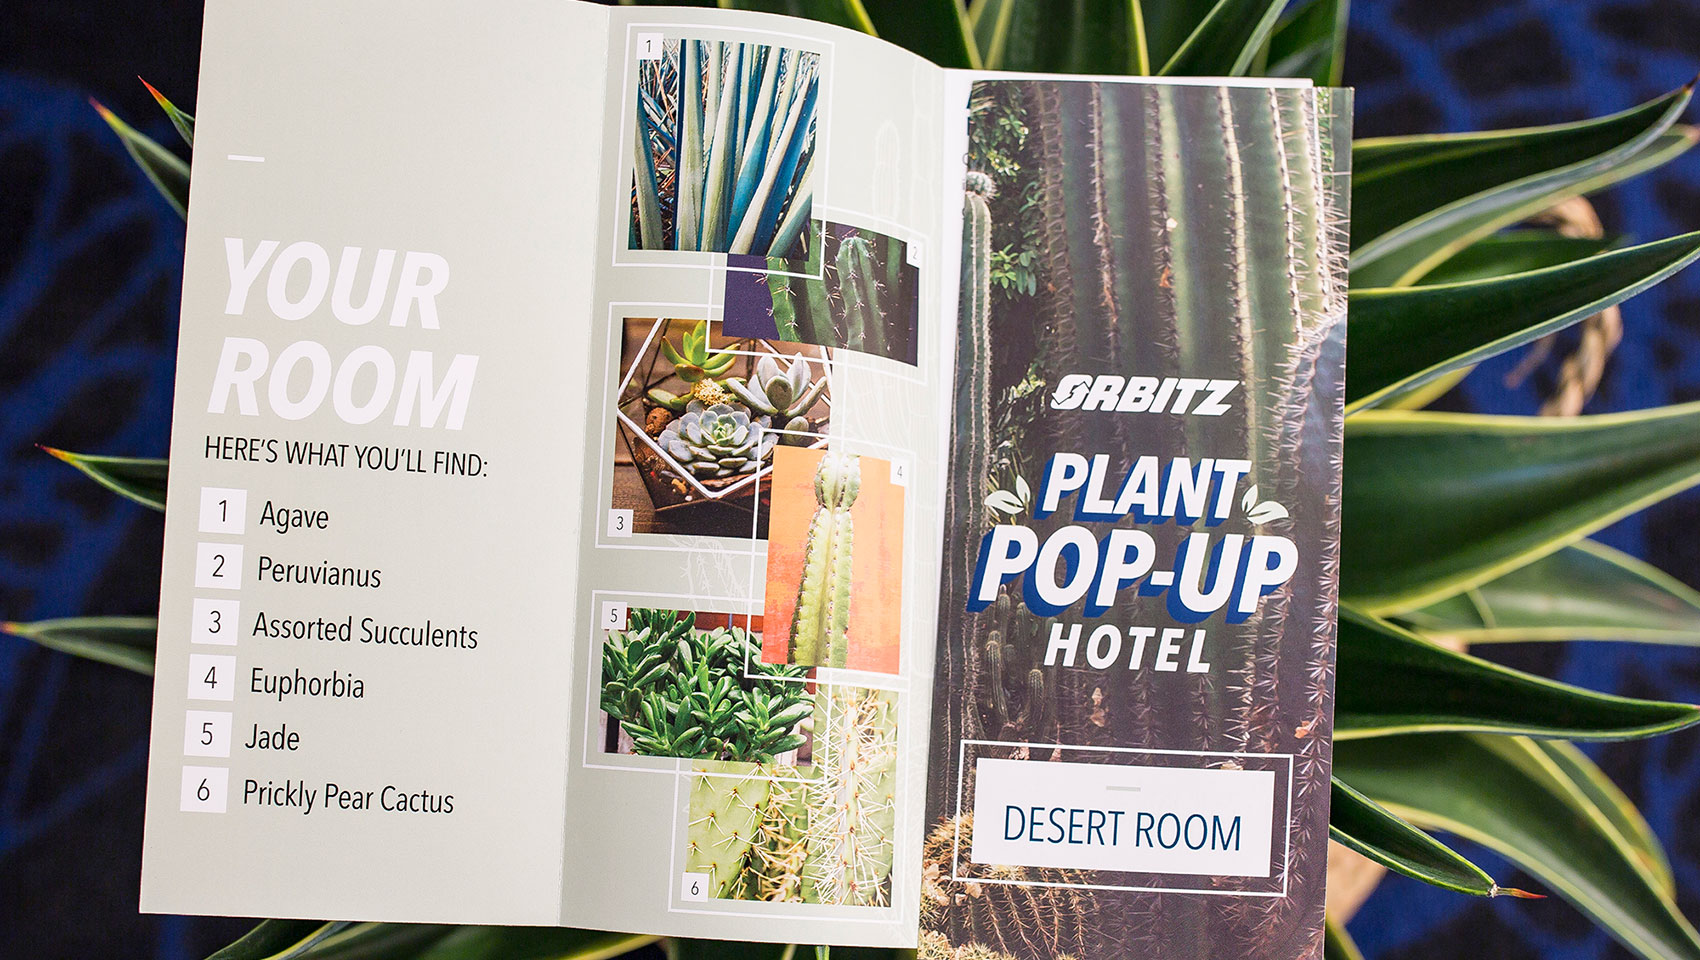 brochure describing plant varieties in room